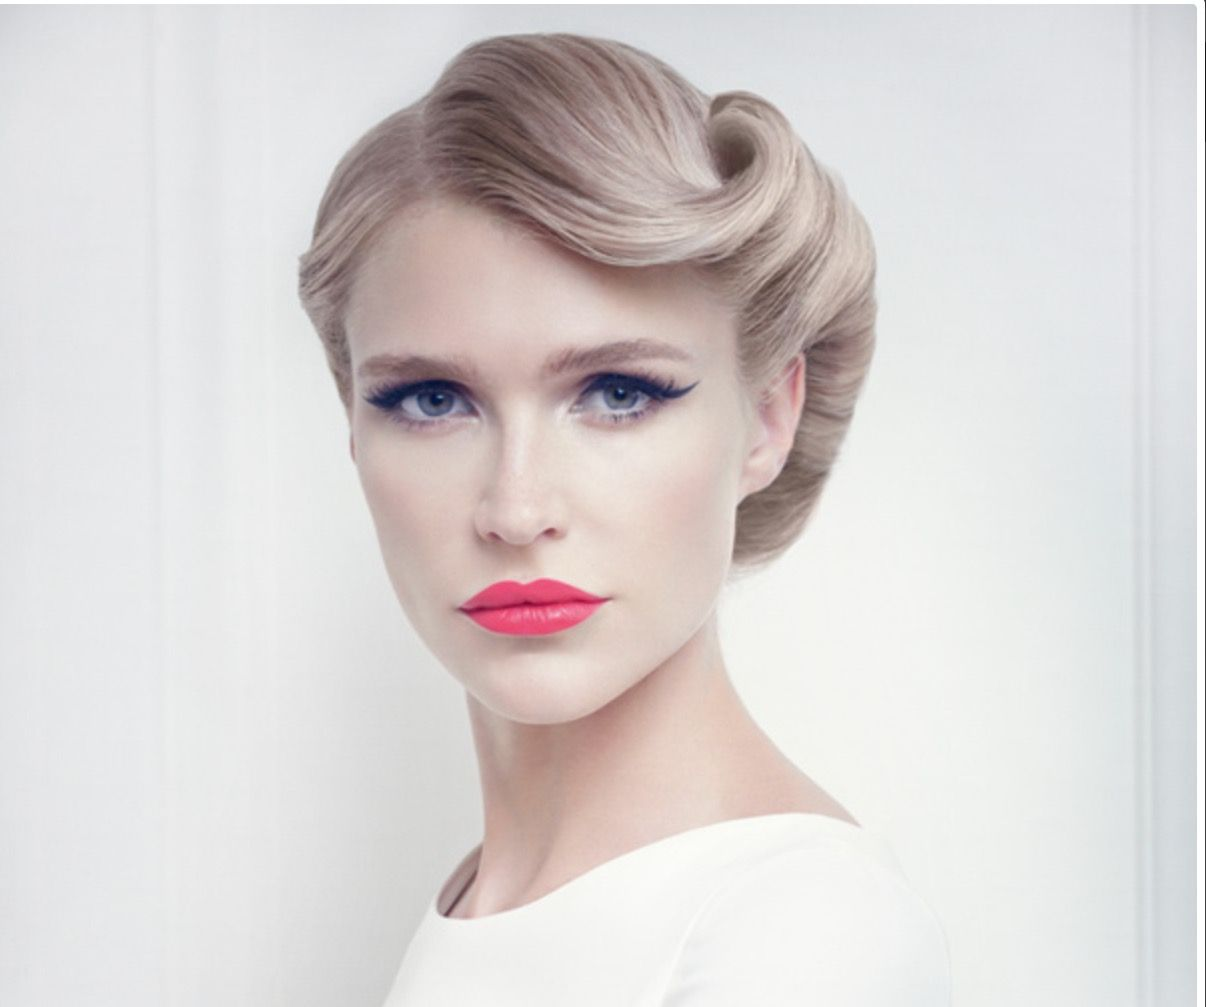 Pin by JohAnnes on Updos   Pinterest   Updos